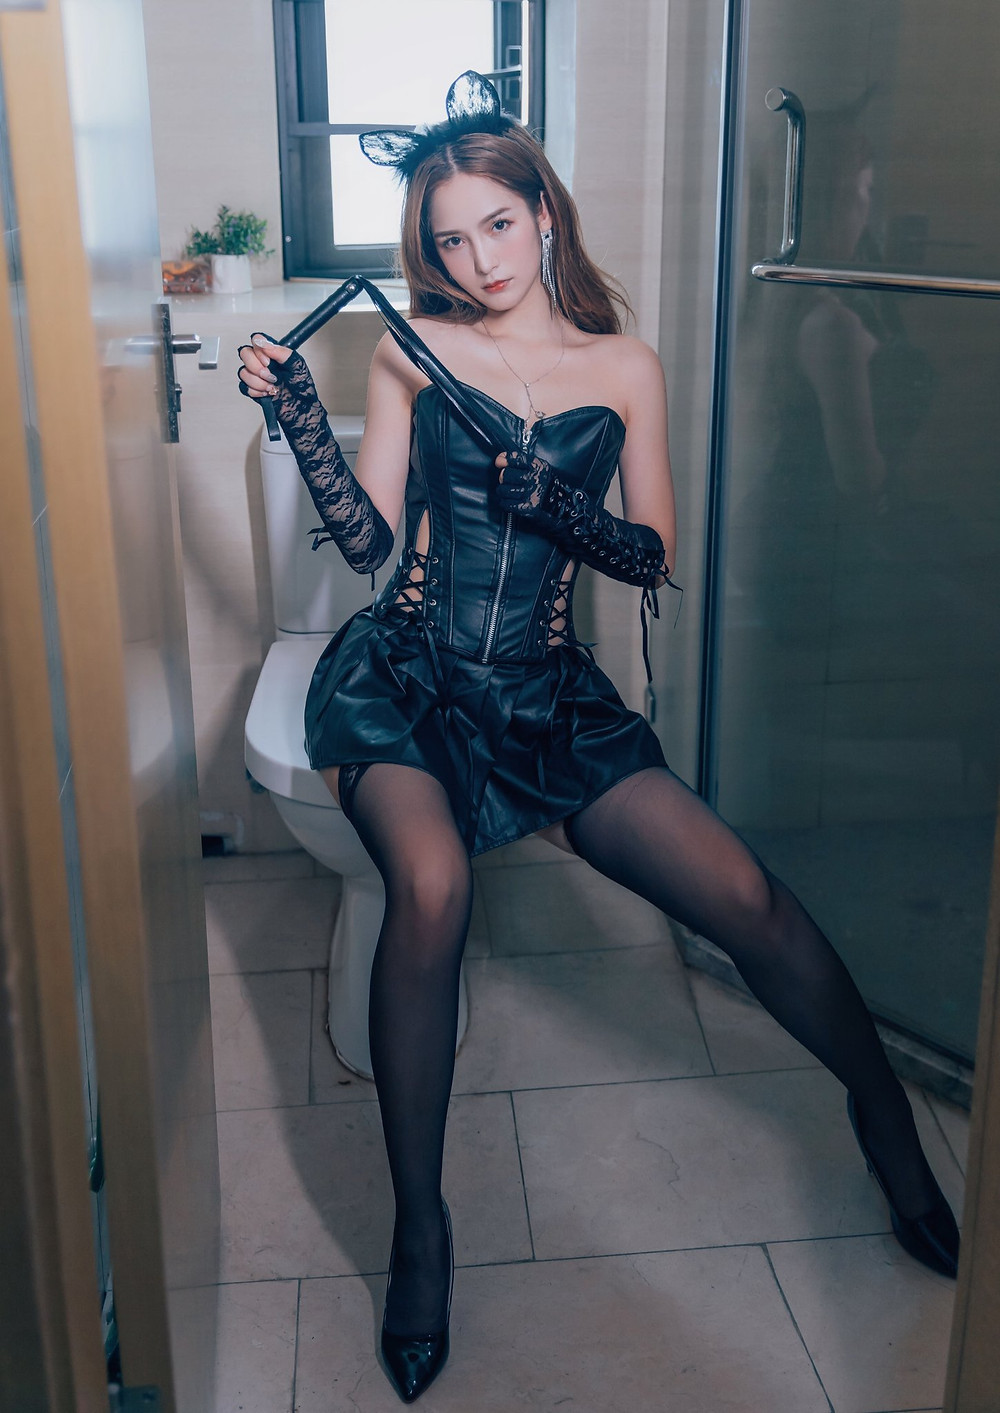 What makes a beautiful woman get into femdom? What is her motivation behind it? - CNQueens Chinese Femdom Resource